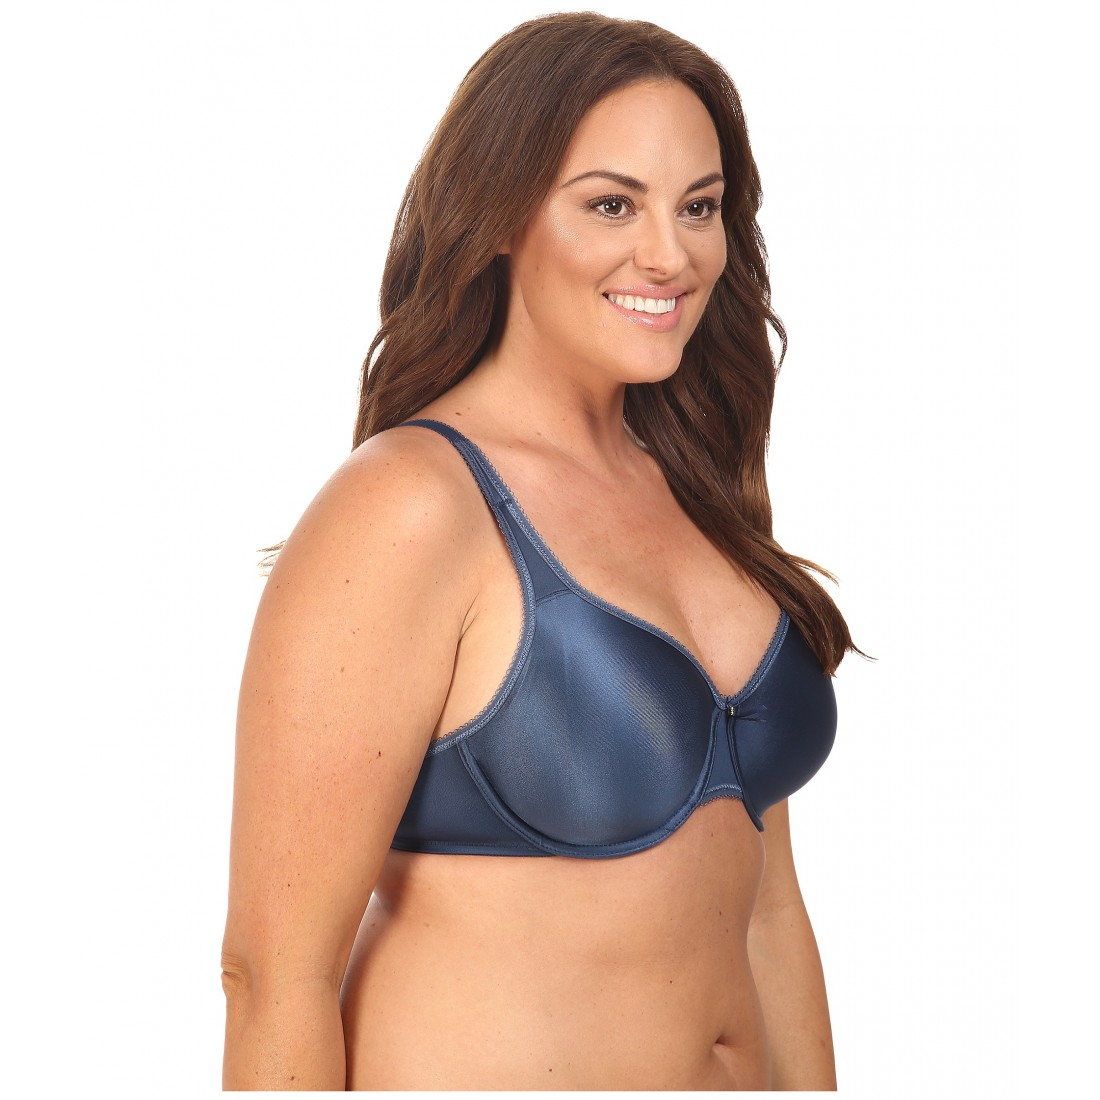 b68222ed6b3f5 Wacoal Basic Beauty Full Figure Underwire Bra 855192 6PM7900208 Dark Denim